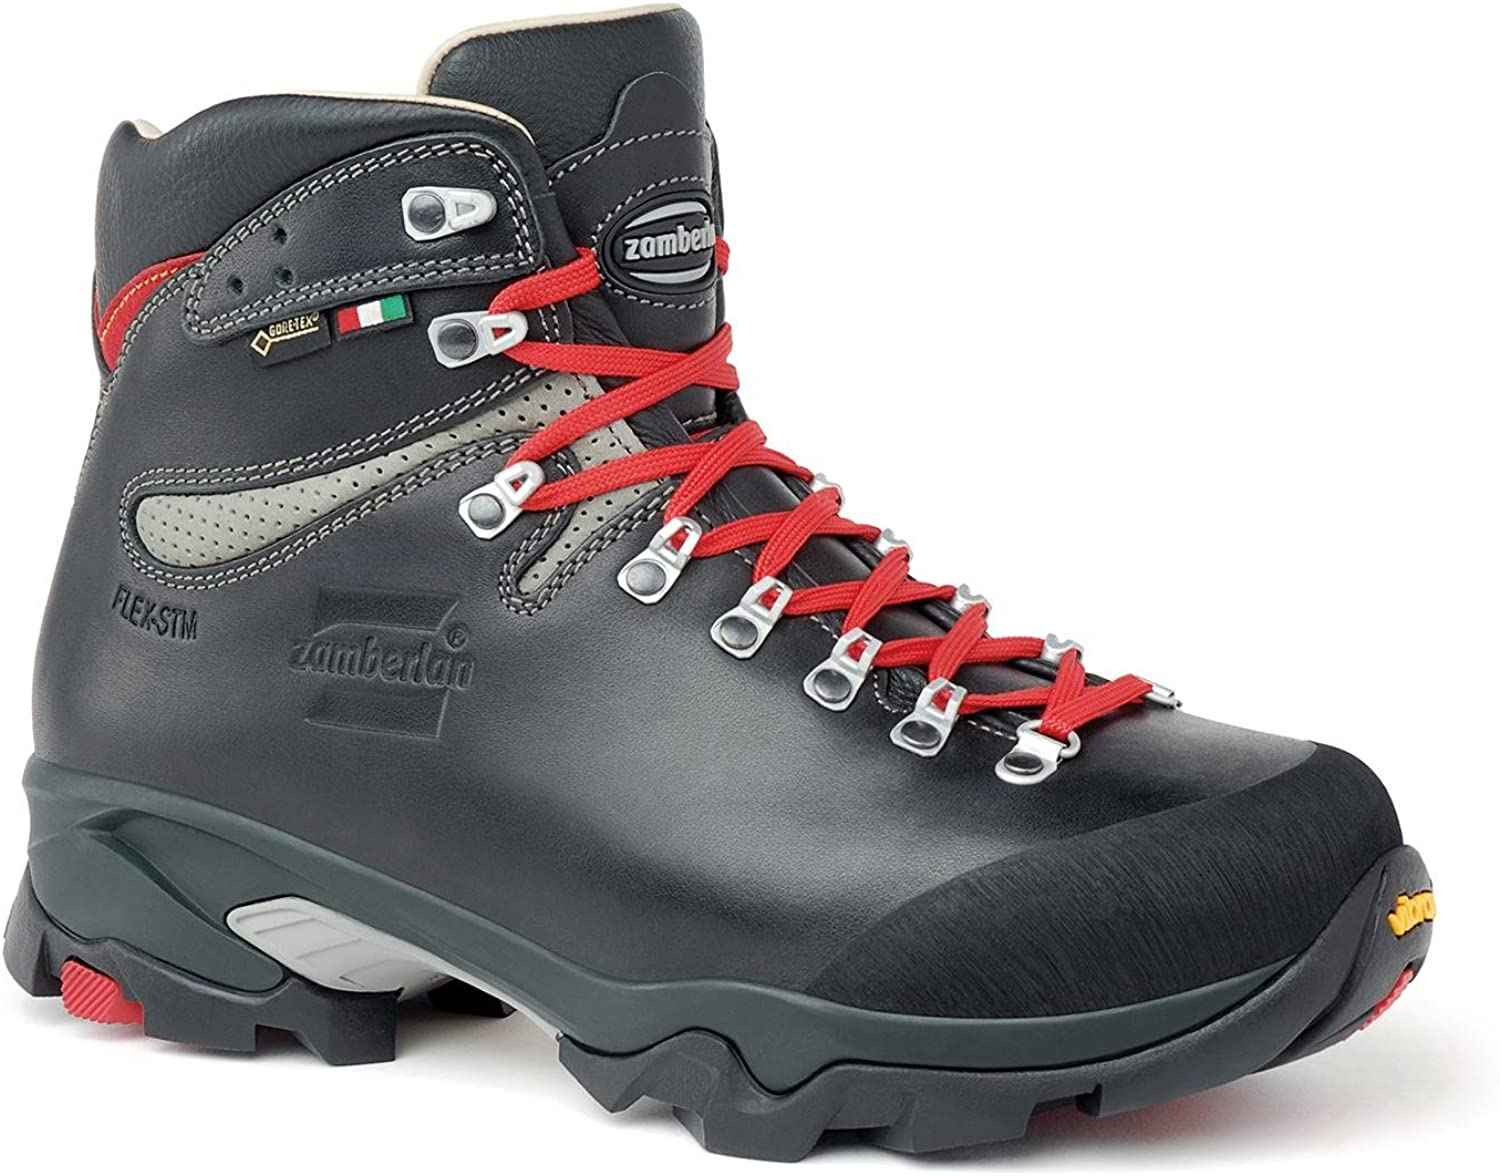 Zamberlan Men's 1996 VIOZ LUX GTX RR Leather Backpacking Boots